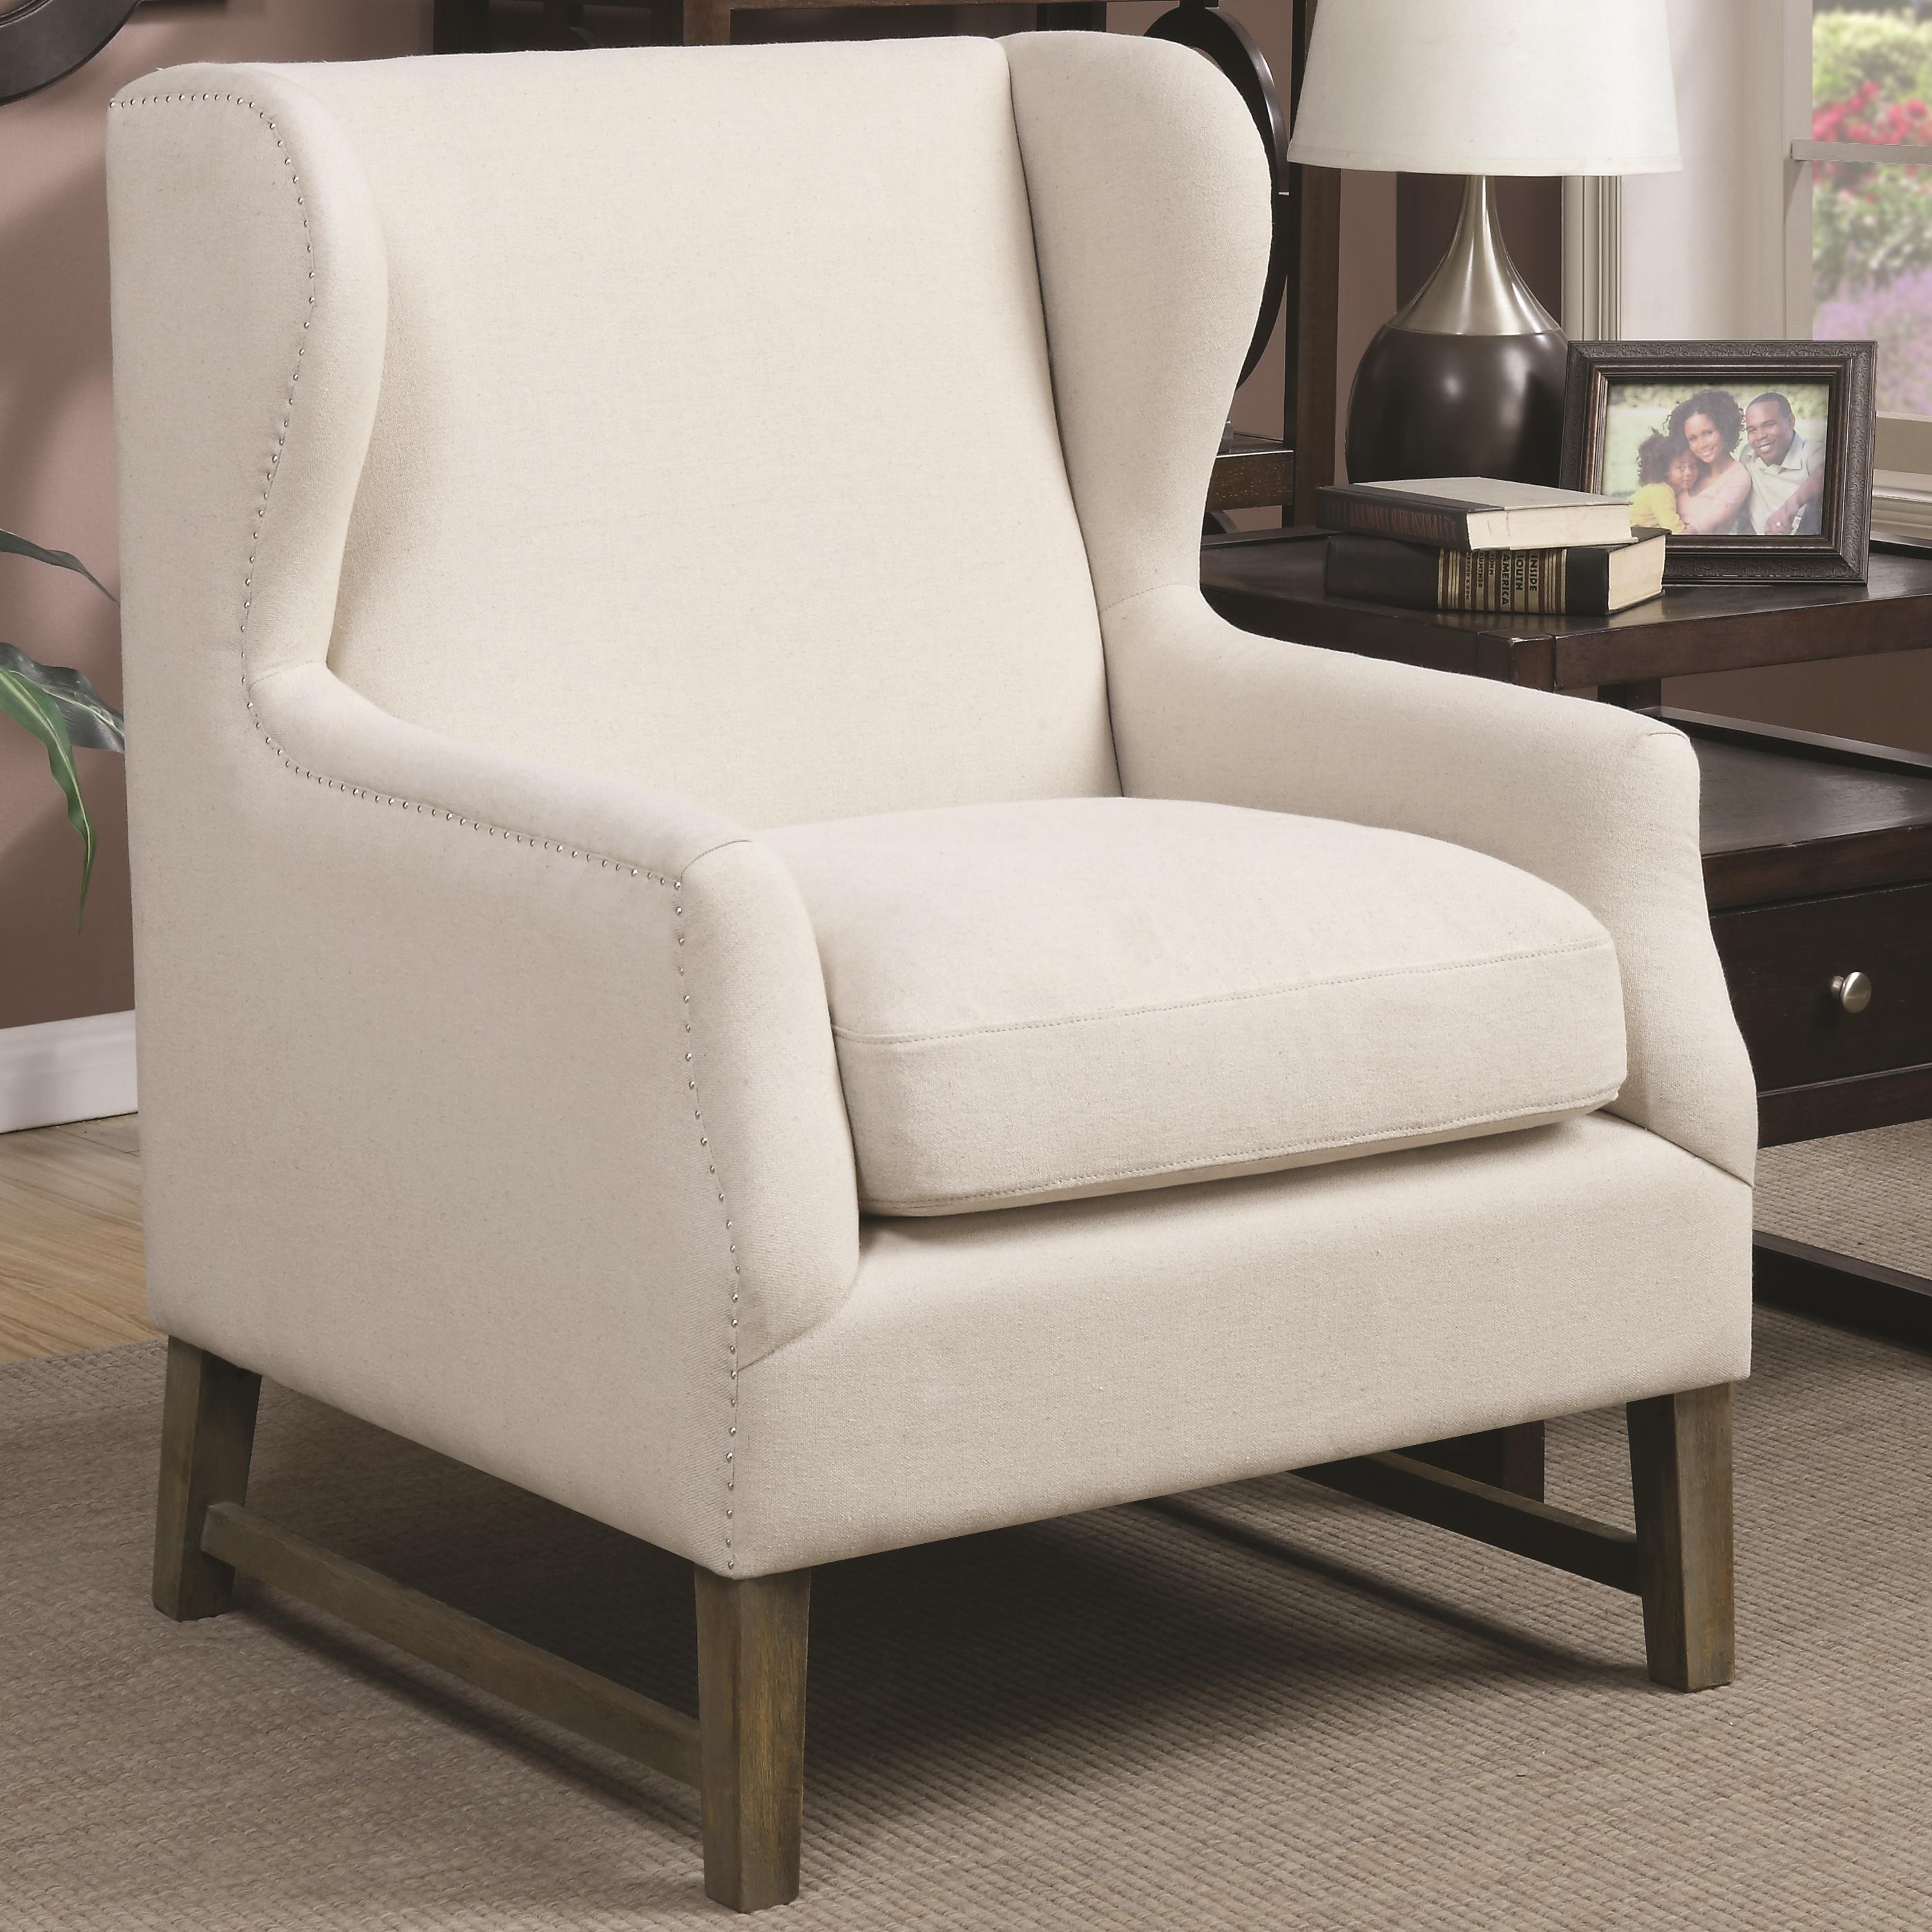 Coaster Accent Seating Accent Chair - Item Number: 902490